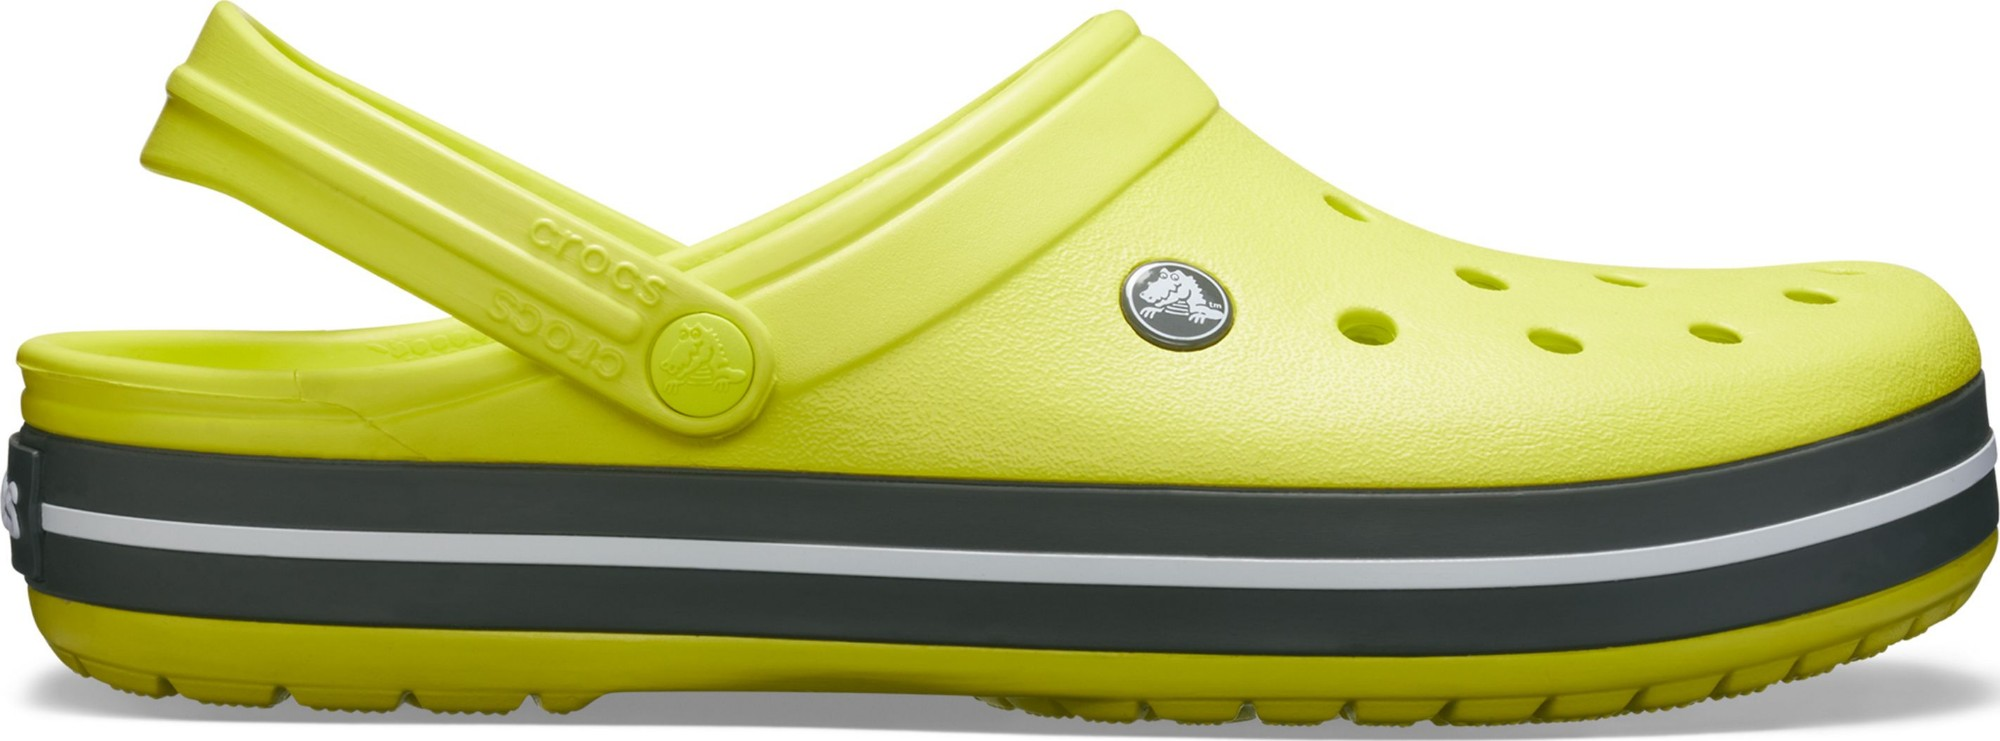 Crocs™ Crocband™ Citrus/Grey 41